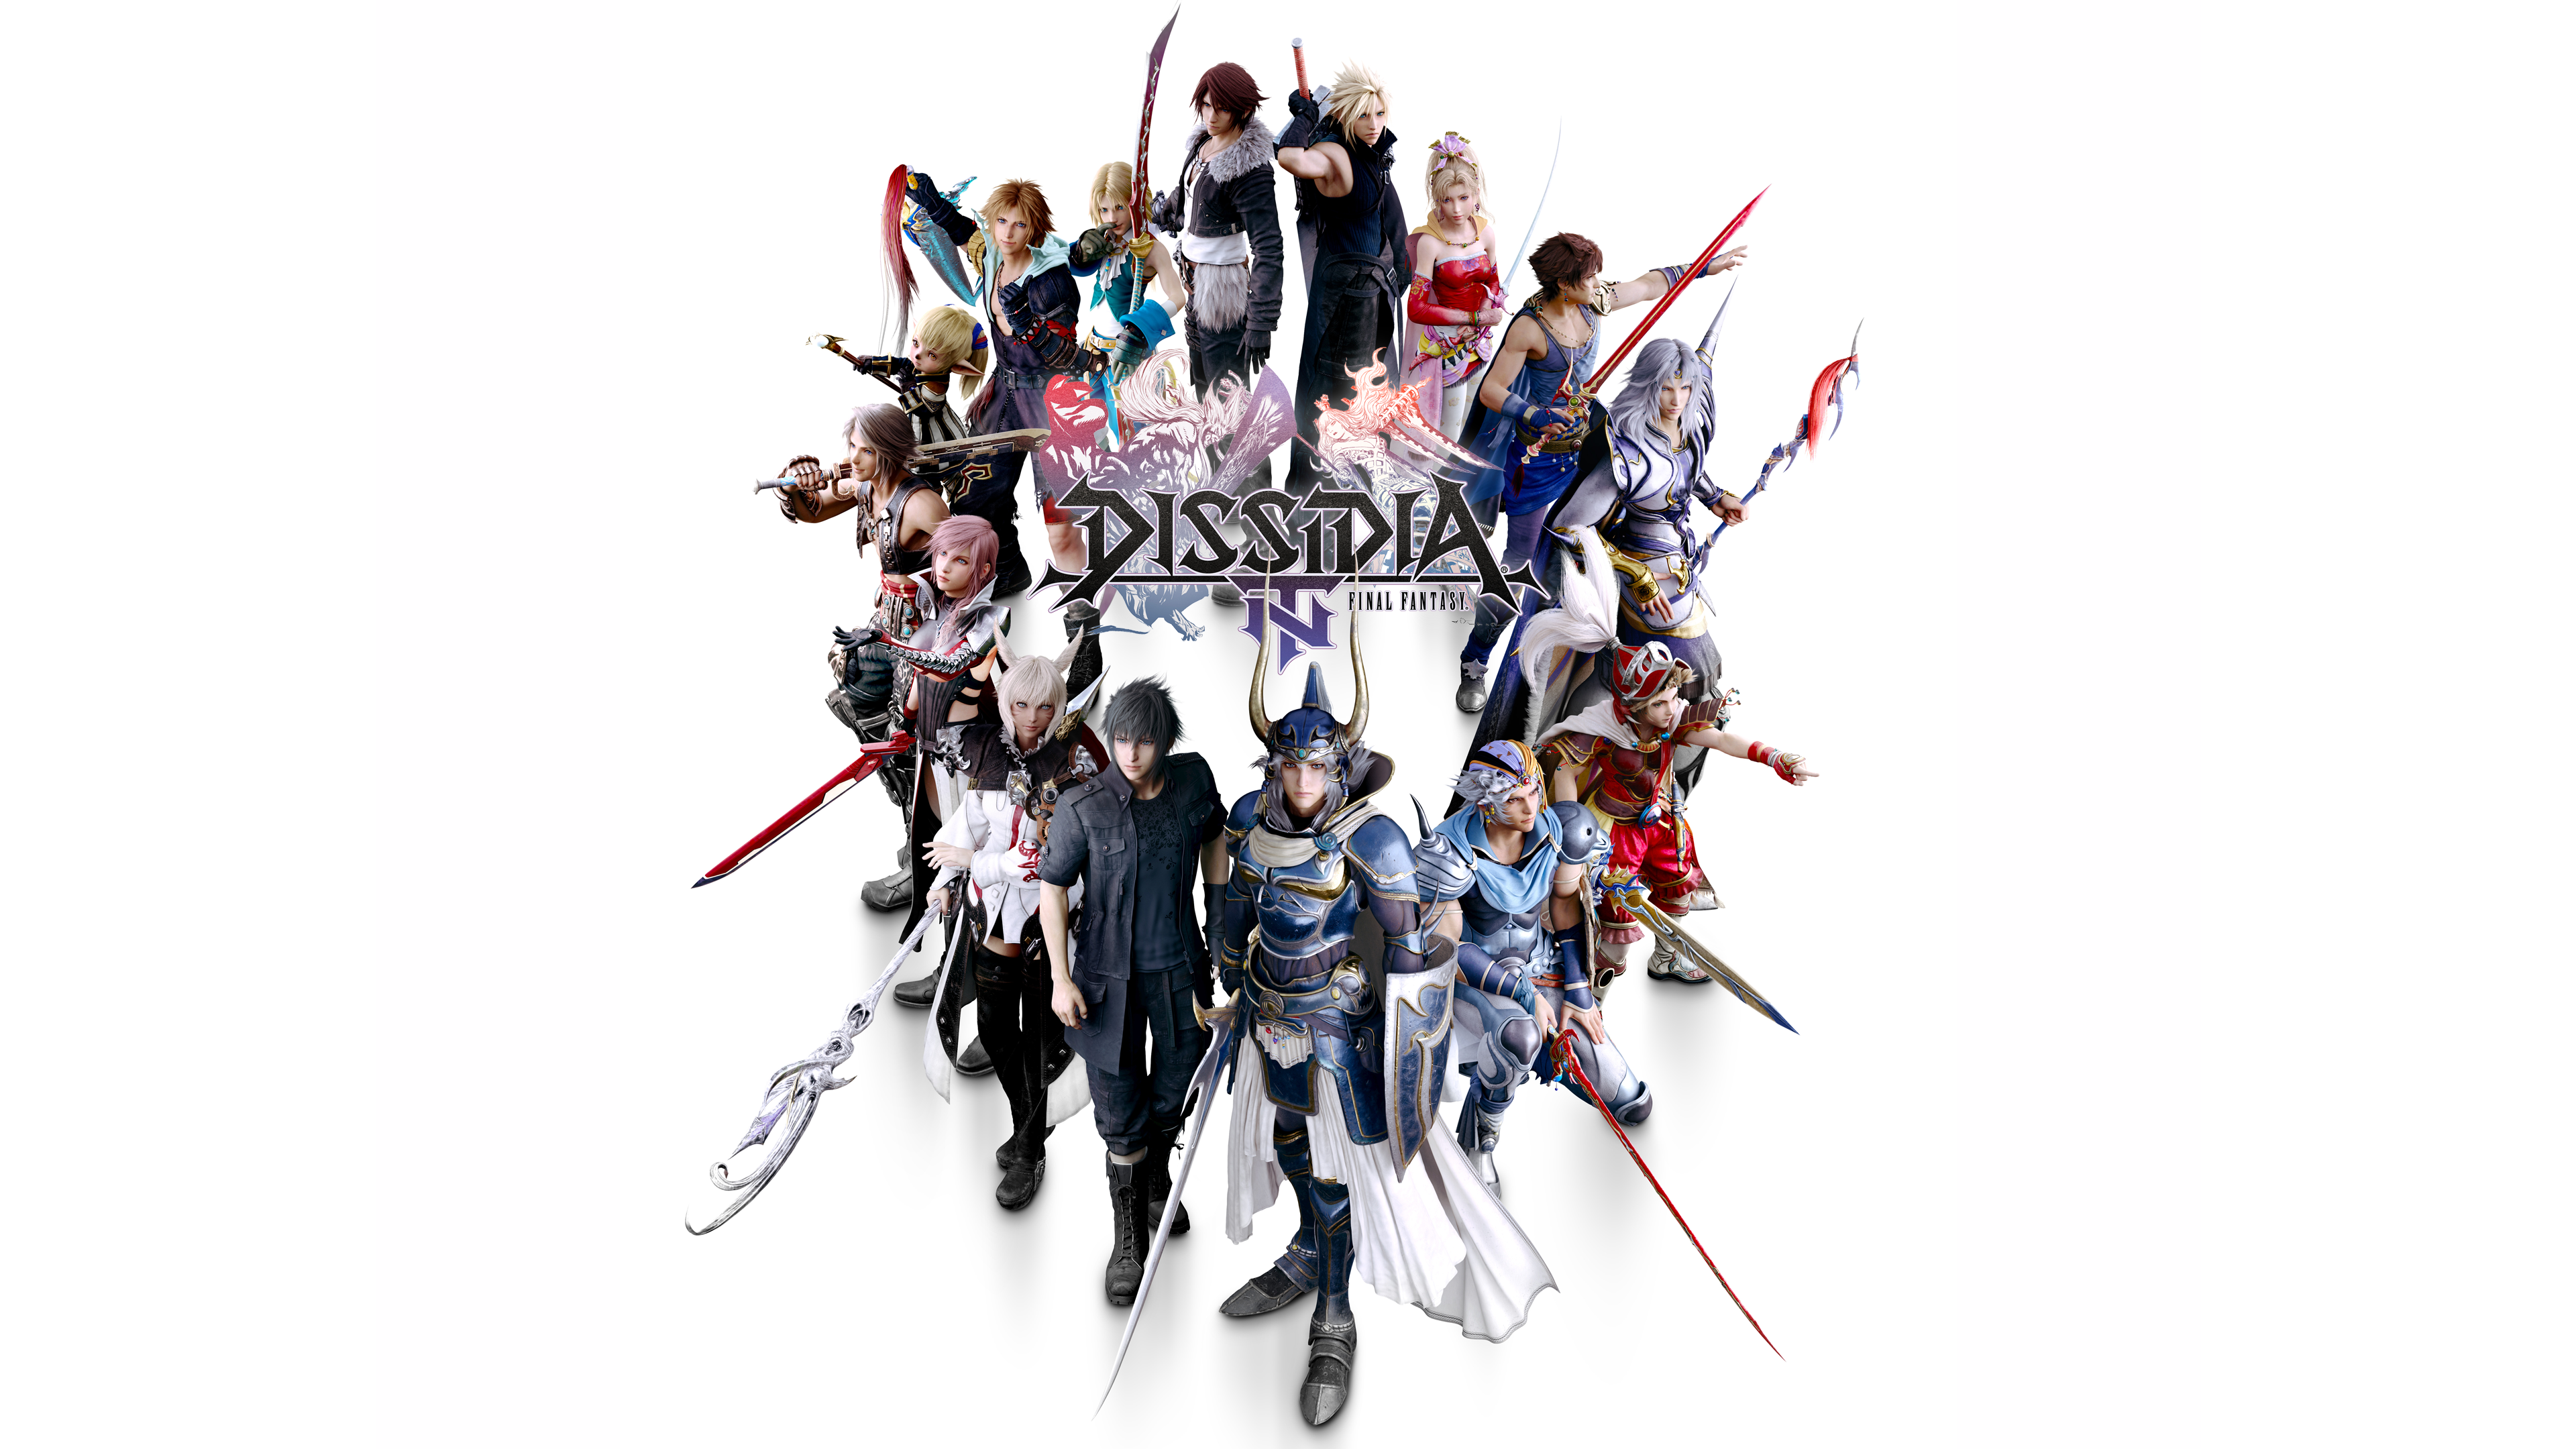 57 Dissidia Final Fantasy Nt Hd Wallpapers Background Images